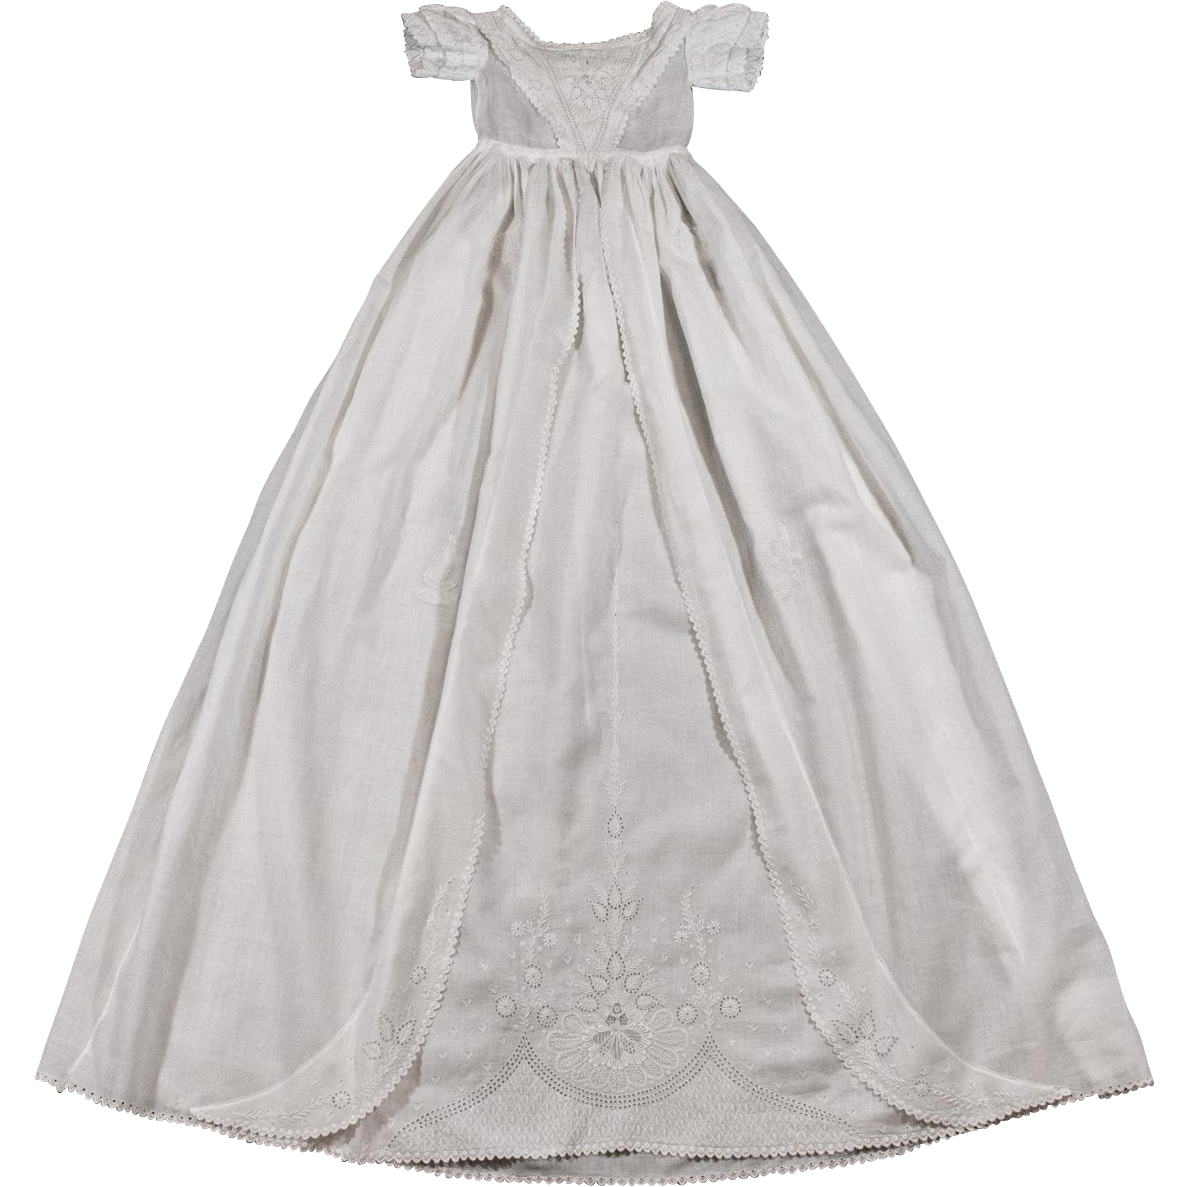 Ayrshire Christening Gown Antique Handmade Embroidery from ...